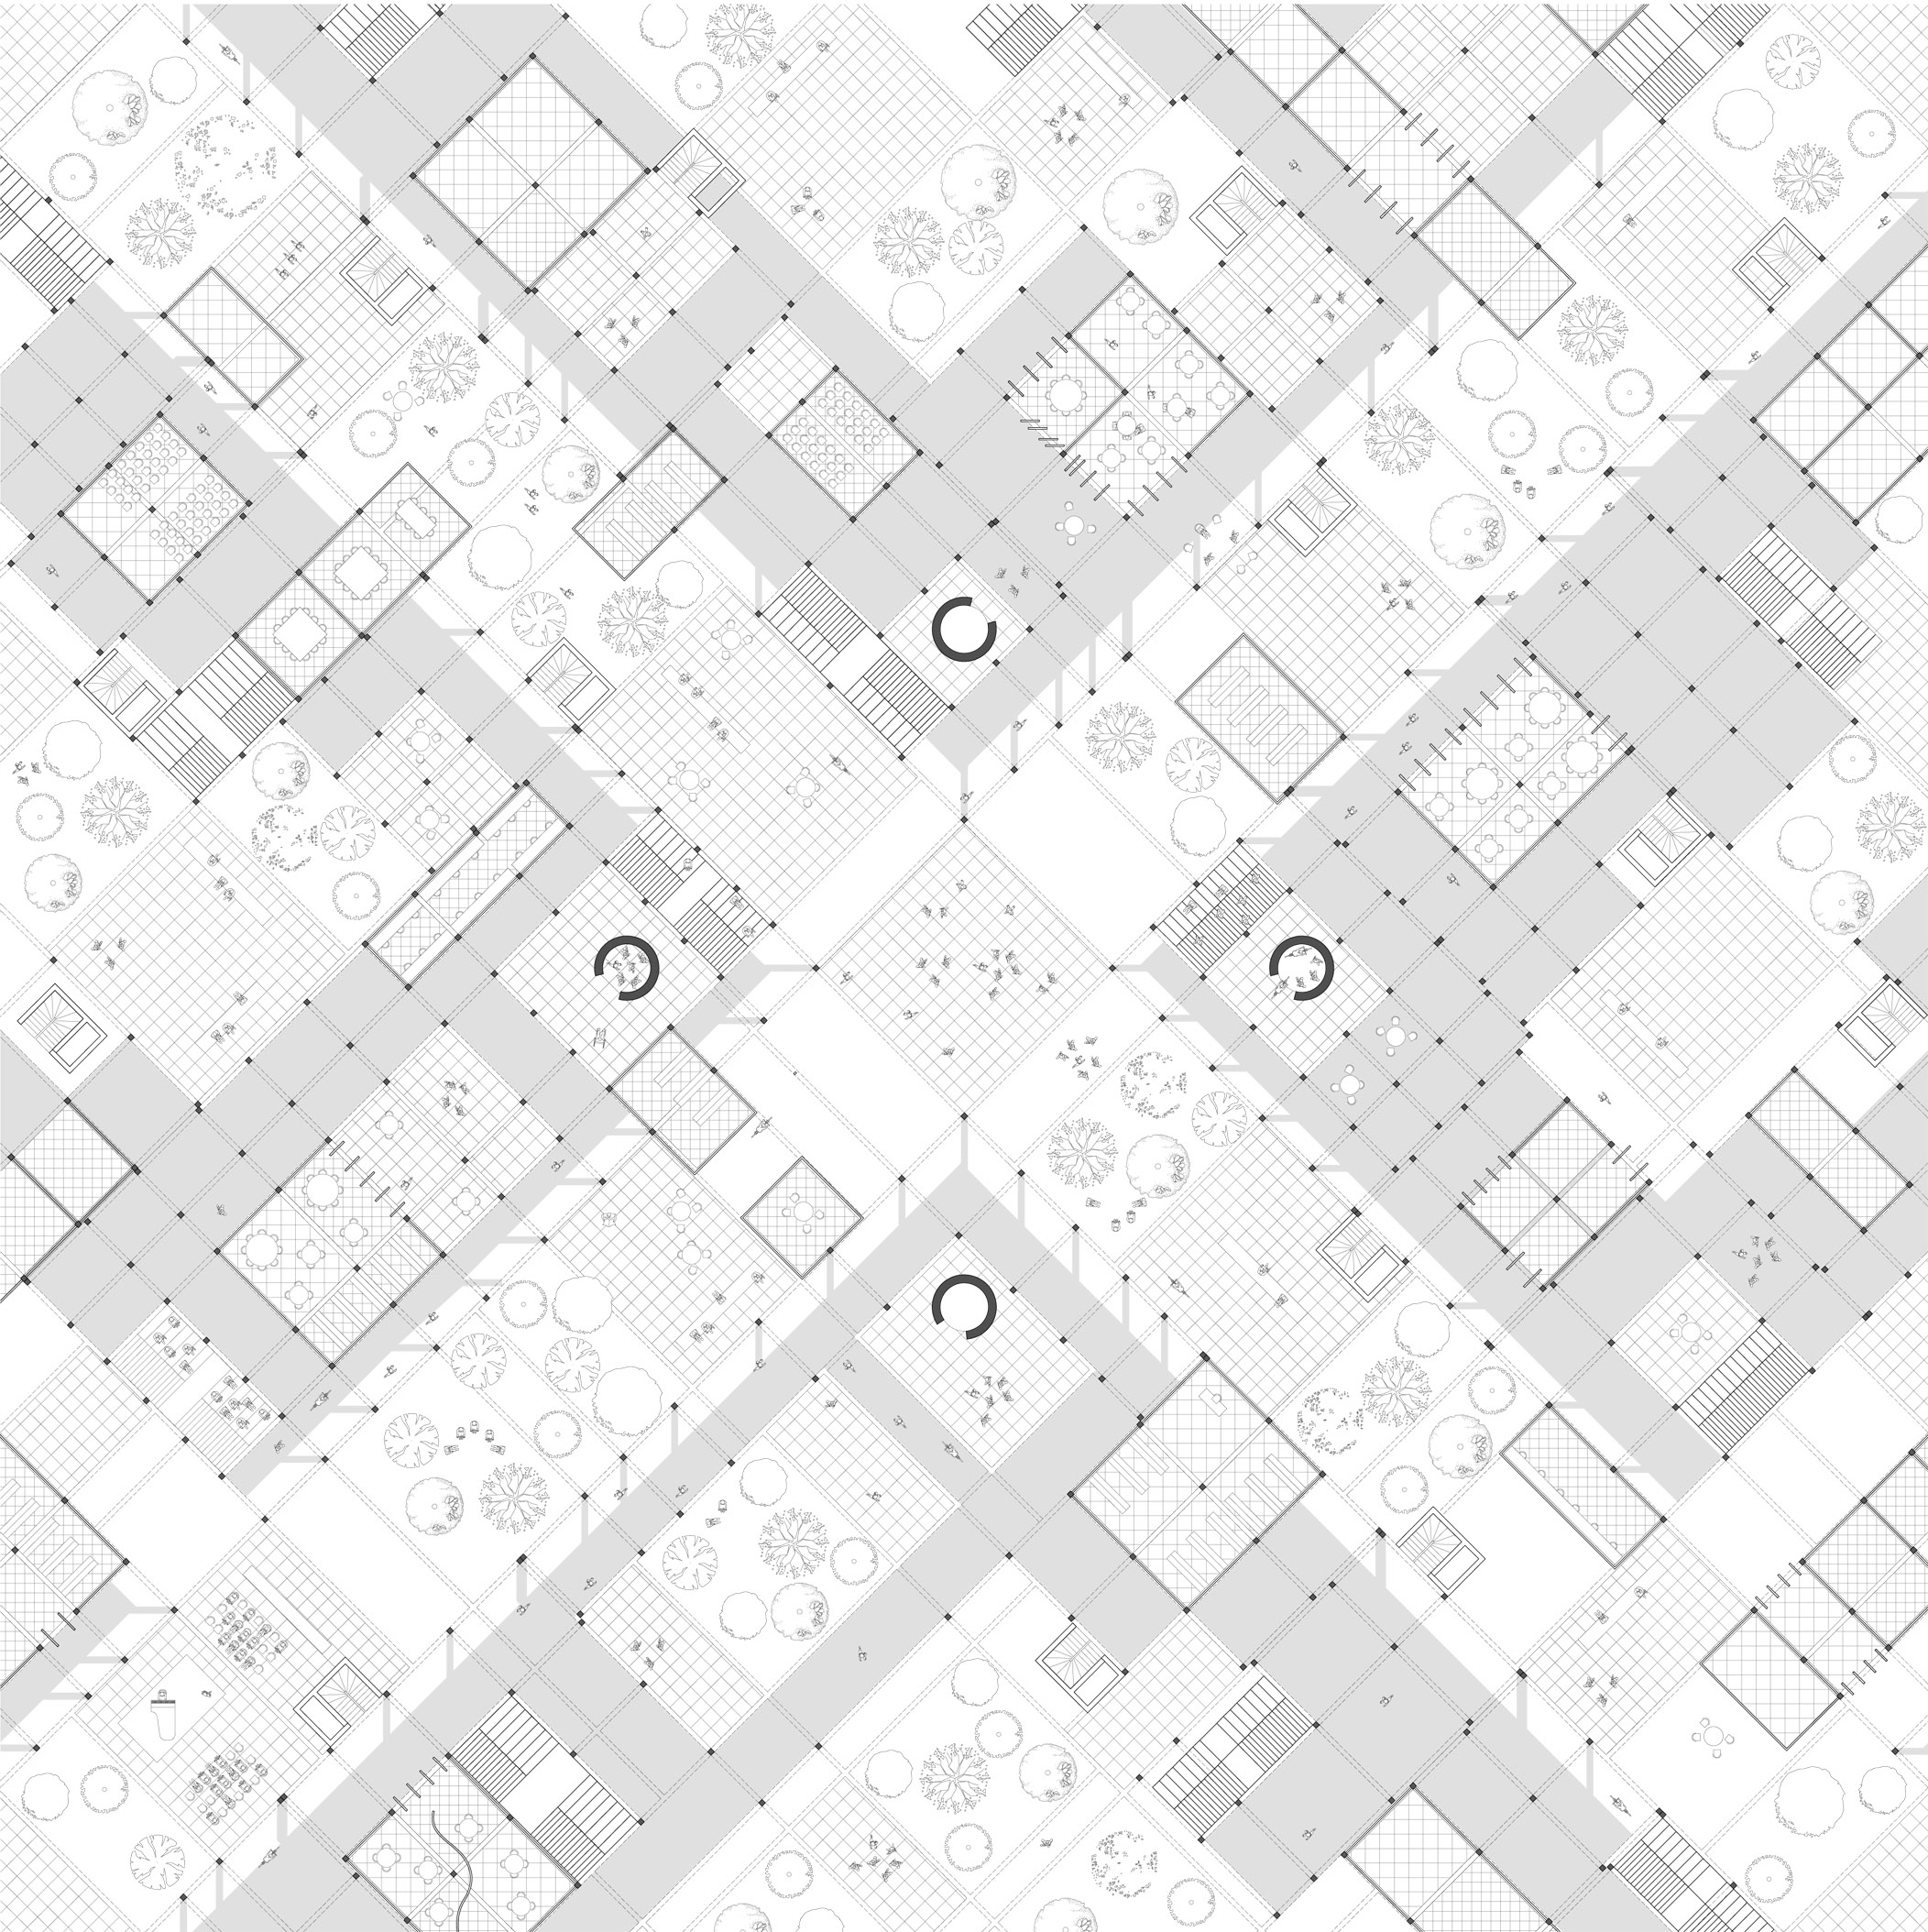 .Pedestrian Crossroad.    The condition presented is that of pedestrianized crossroad. The ground floor of the city expands in multiple directions within the continuity that the pilotis suggests. Axes of movement coexist with places of stasis while nature is dispersed equally around the city.